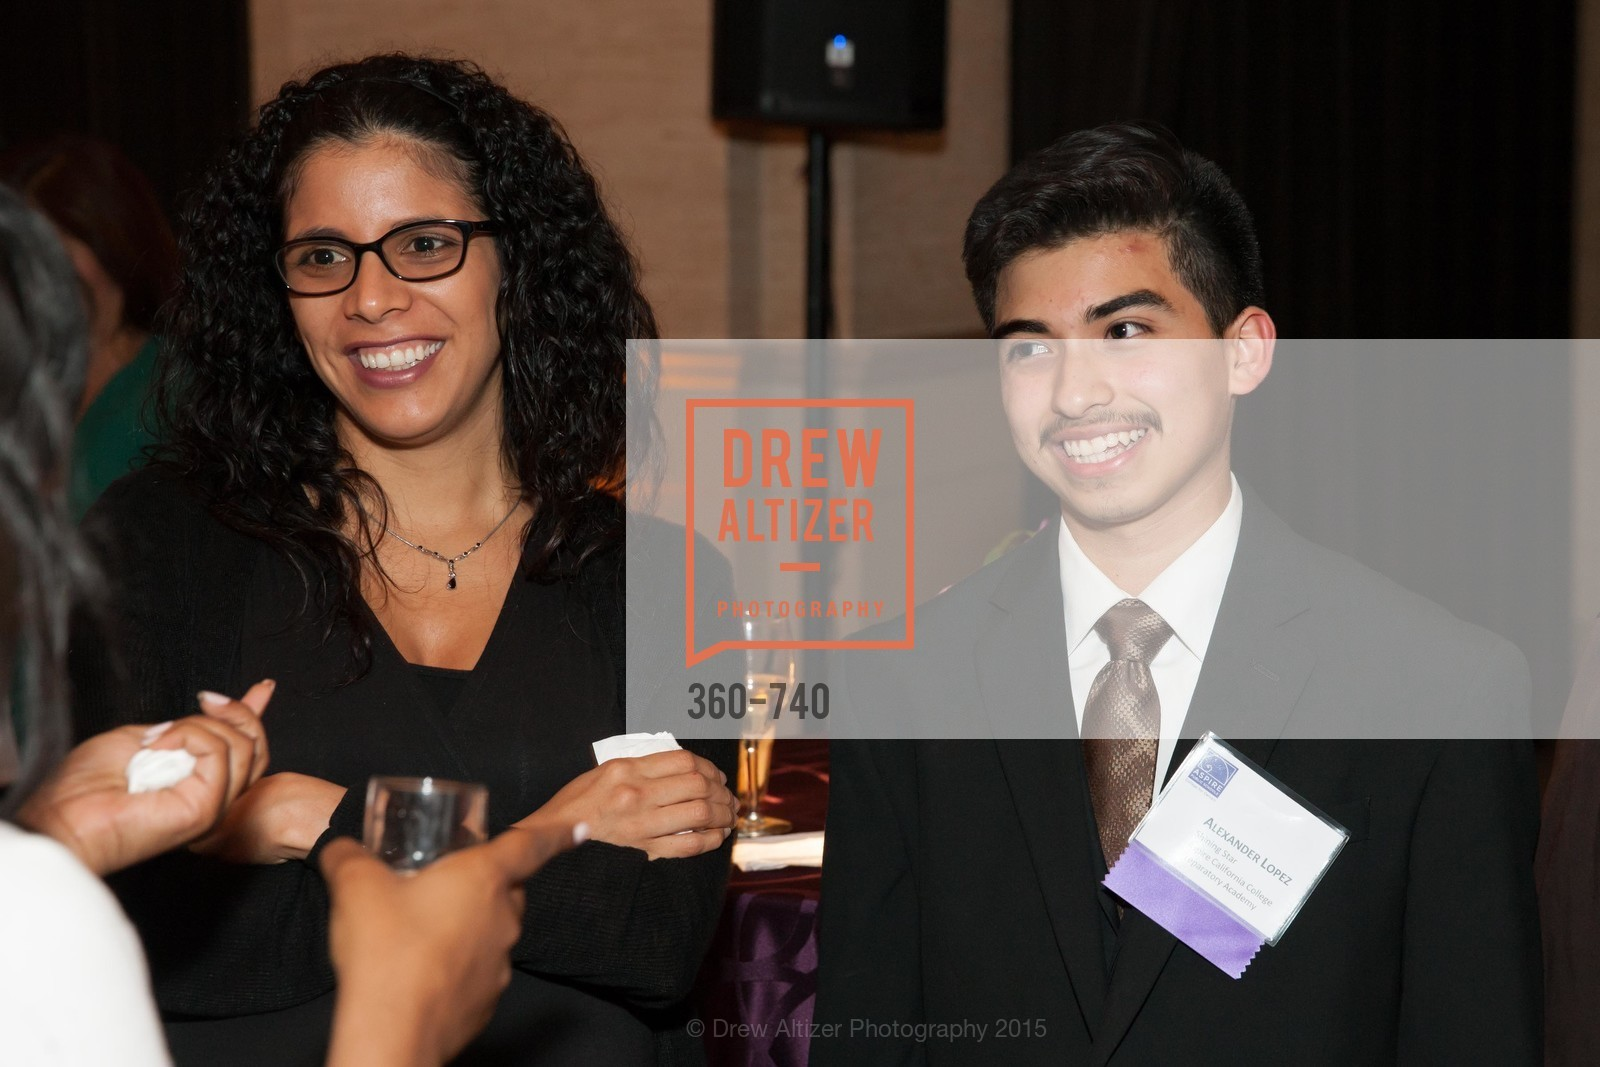 Sarah Salazar, Alexander Lopez, Aspire Annual College for Certain Dinne, US, May 21st, 2015,Drew Altizer, Drew Altizer Photography, full-service agency, private events, San Francisco photographer, photographer california